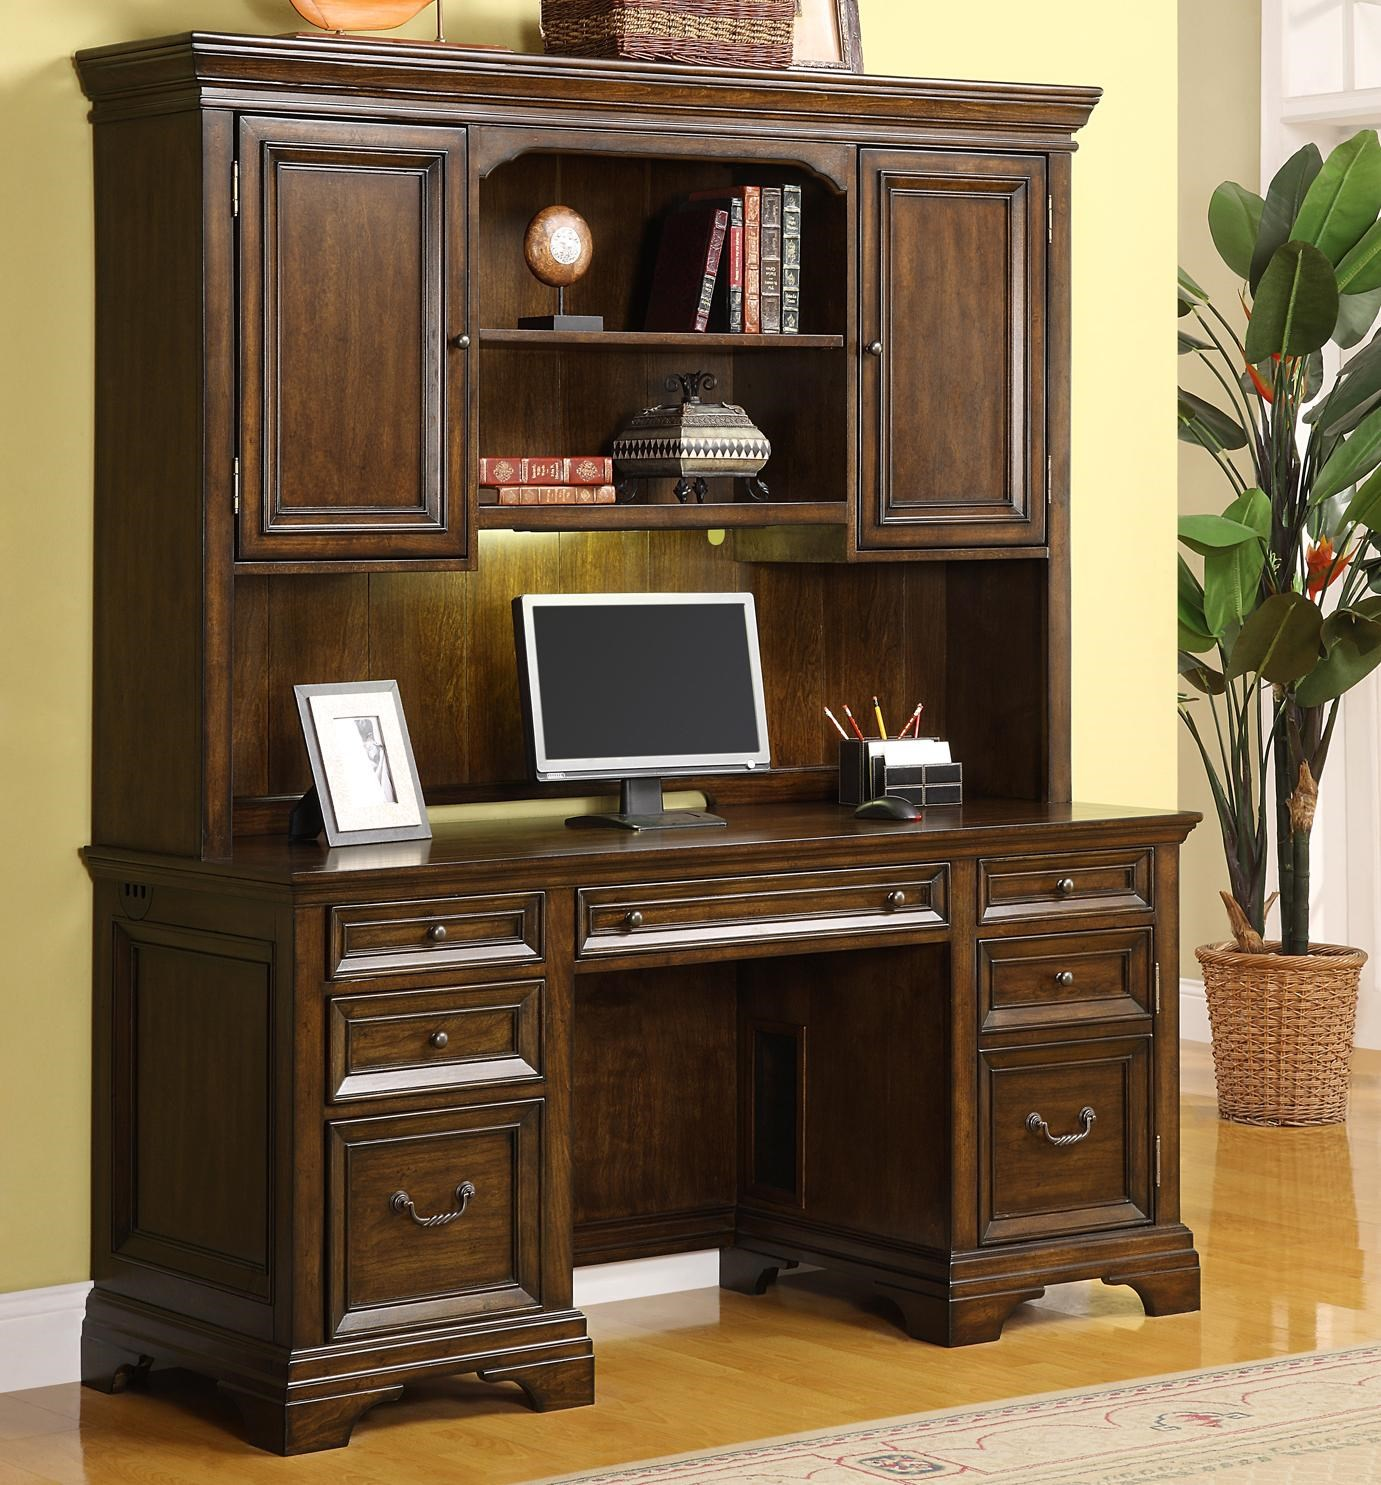 Crendenza And Hutch Woodlands By Flexsteel Wynwood Collection Wilcox Furniture Desk